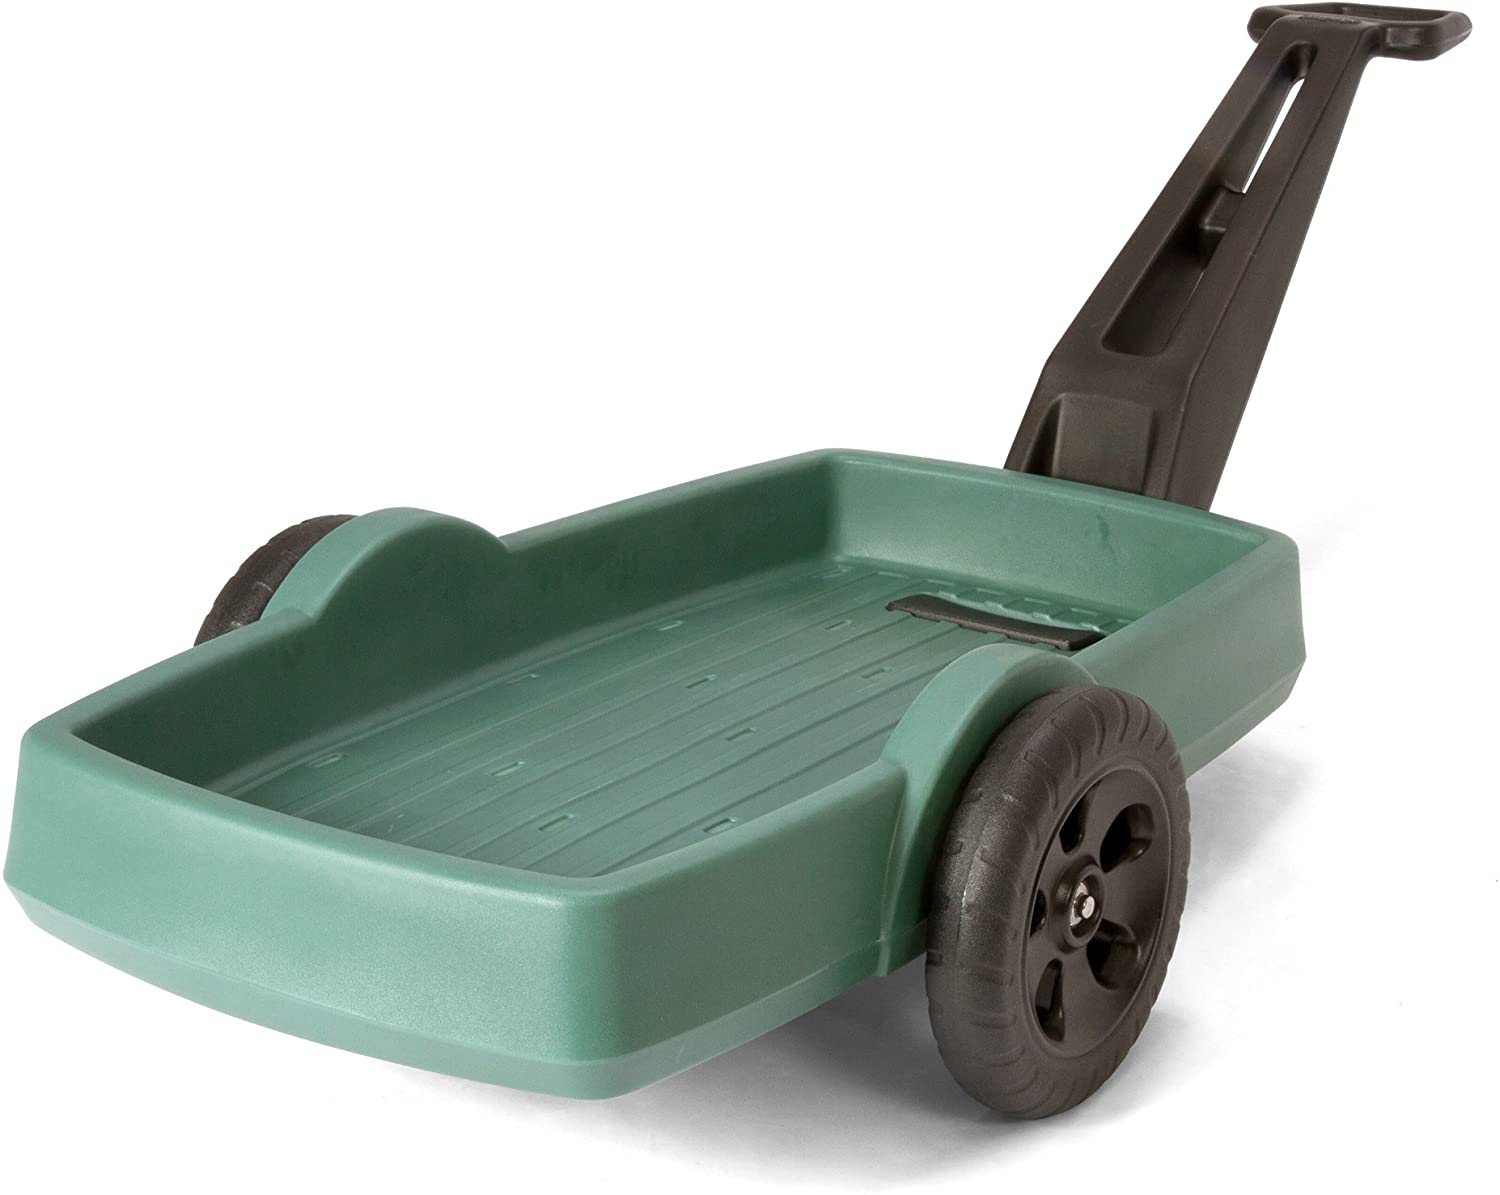 Simplay3 Yard and Garden Great interest Bargain sale Outdoor Cart Turn Long 2 - Easy Handle